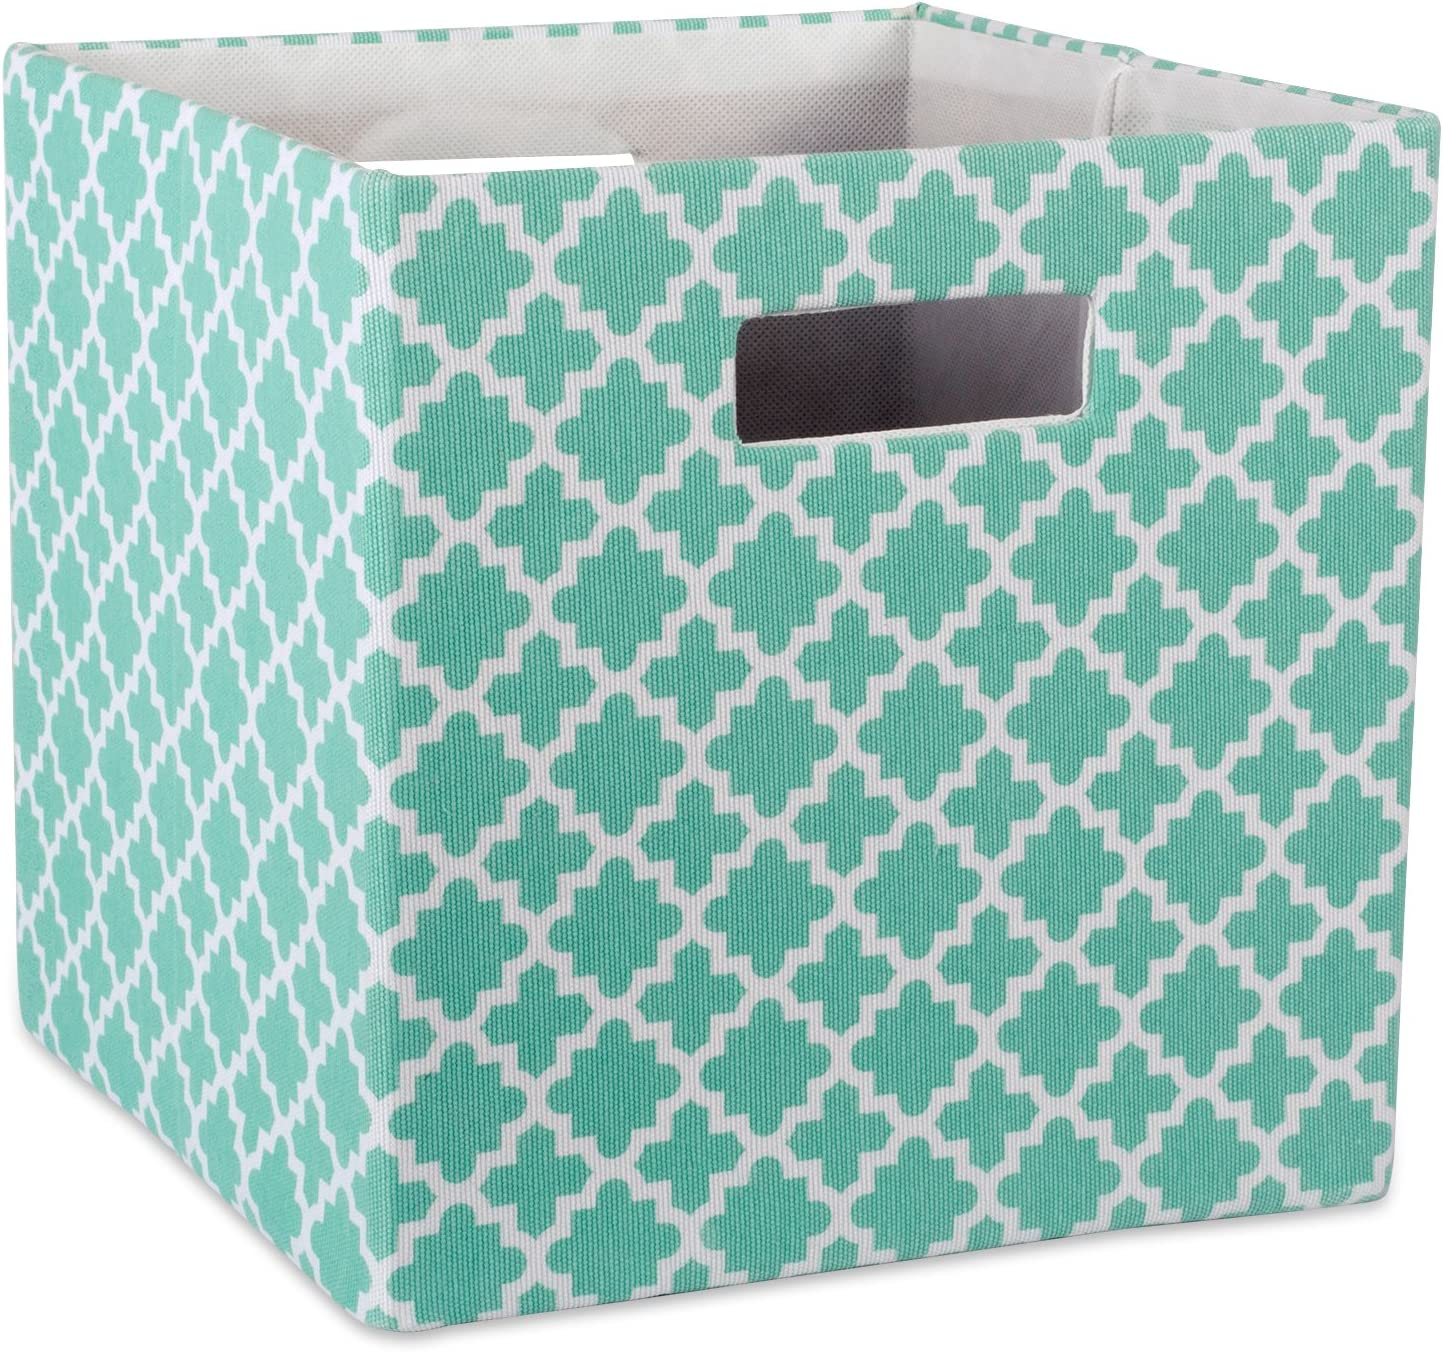 "DII Hard Sided Collapsible Fabric Storage Container for Nursery, Offices, & Home Organization, (13x13x13"") - Lattice Aqua"